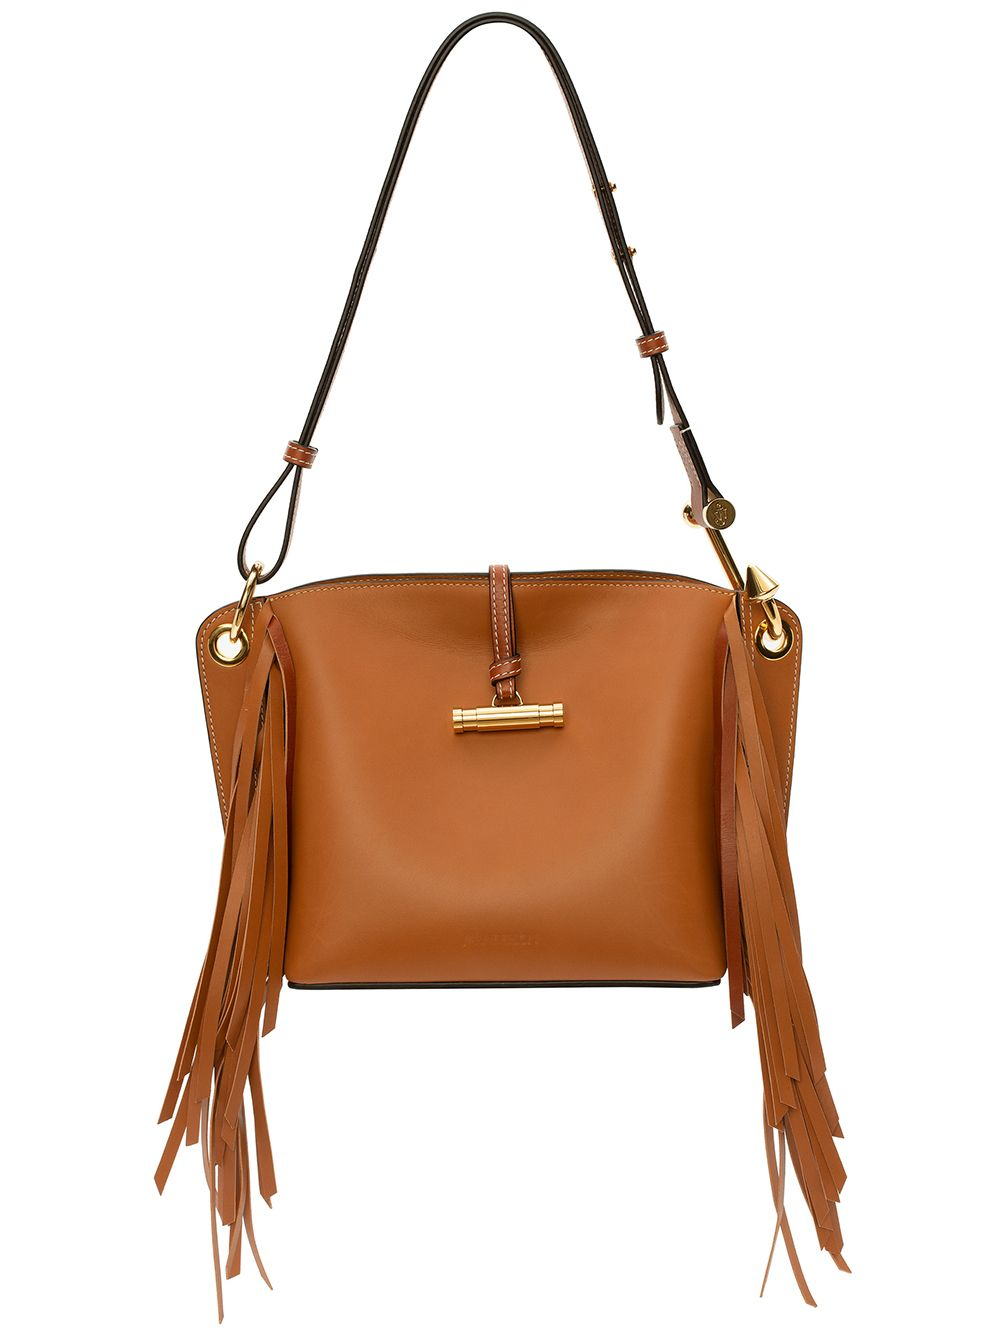 JW Anderson $765.00